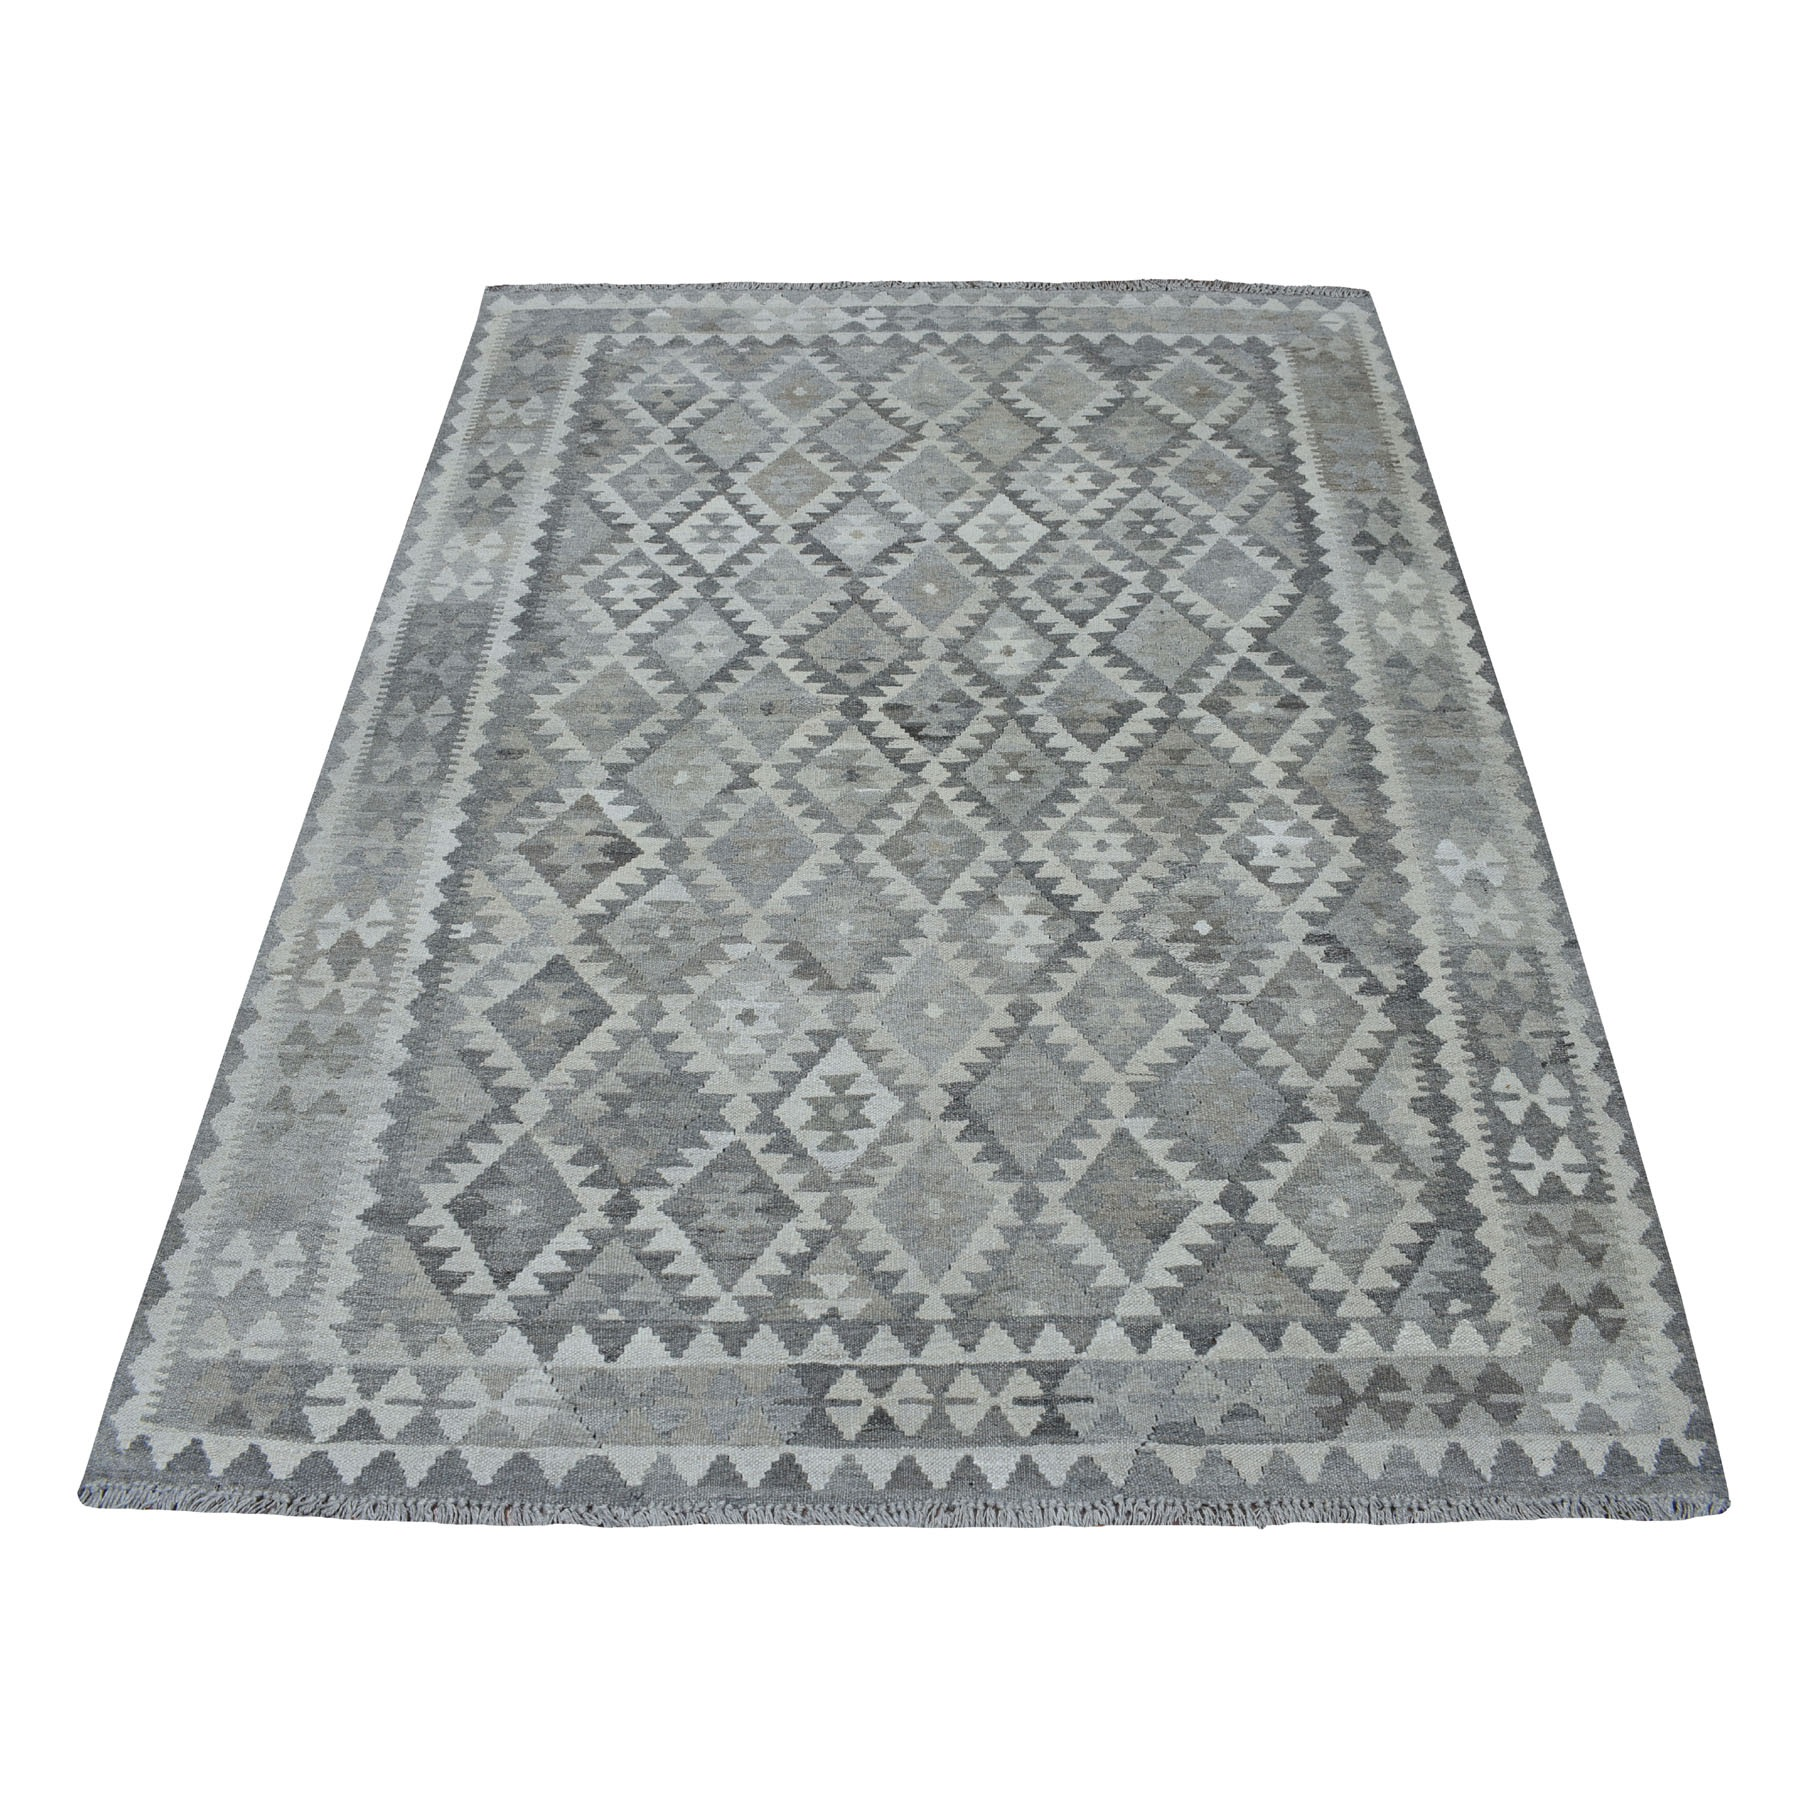 "5'x6'5"" Undyed Natural Wool Afghan Kilim Reversible Hand Woven Oriental Rug"